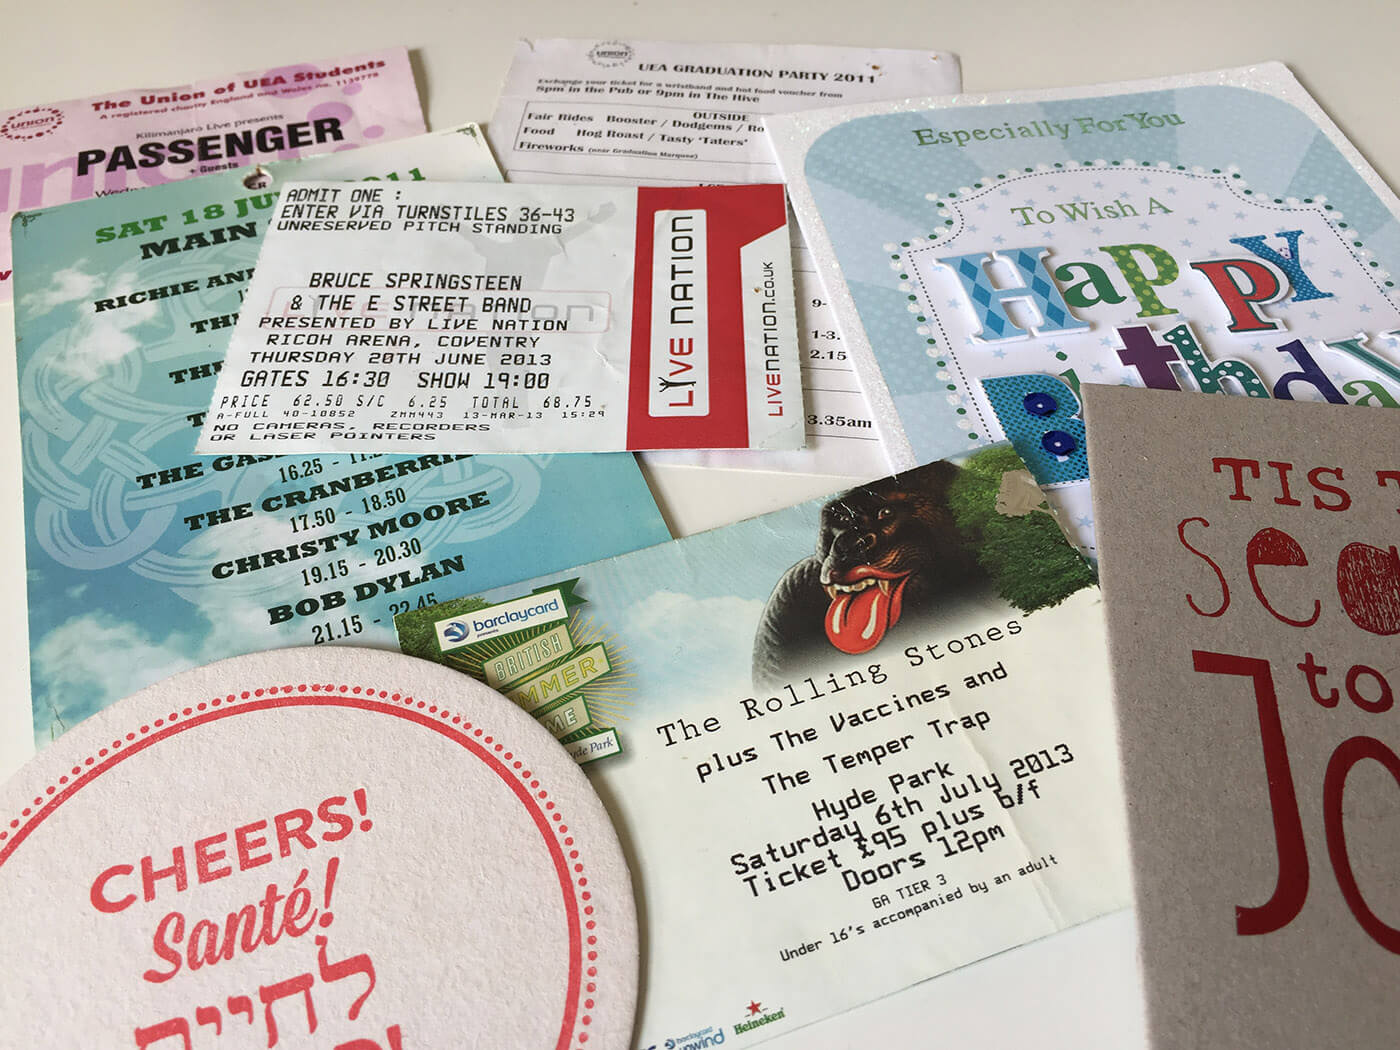 gig tickets, flyers and birthday cards